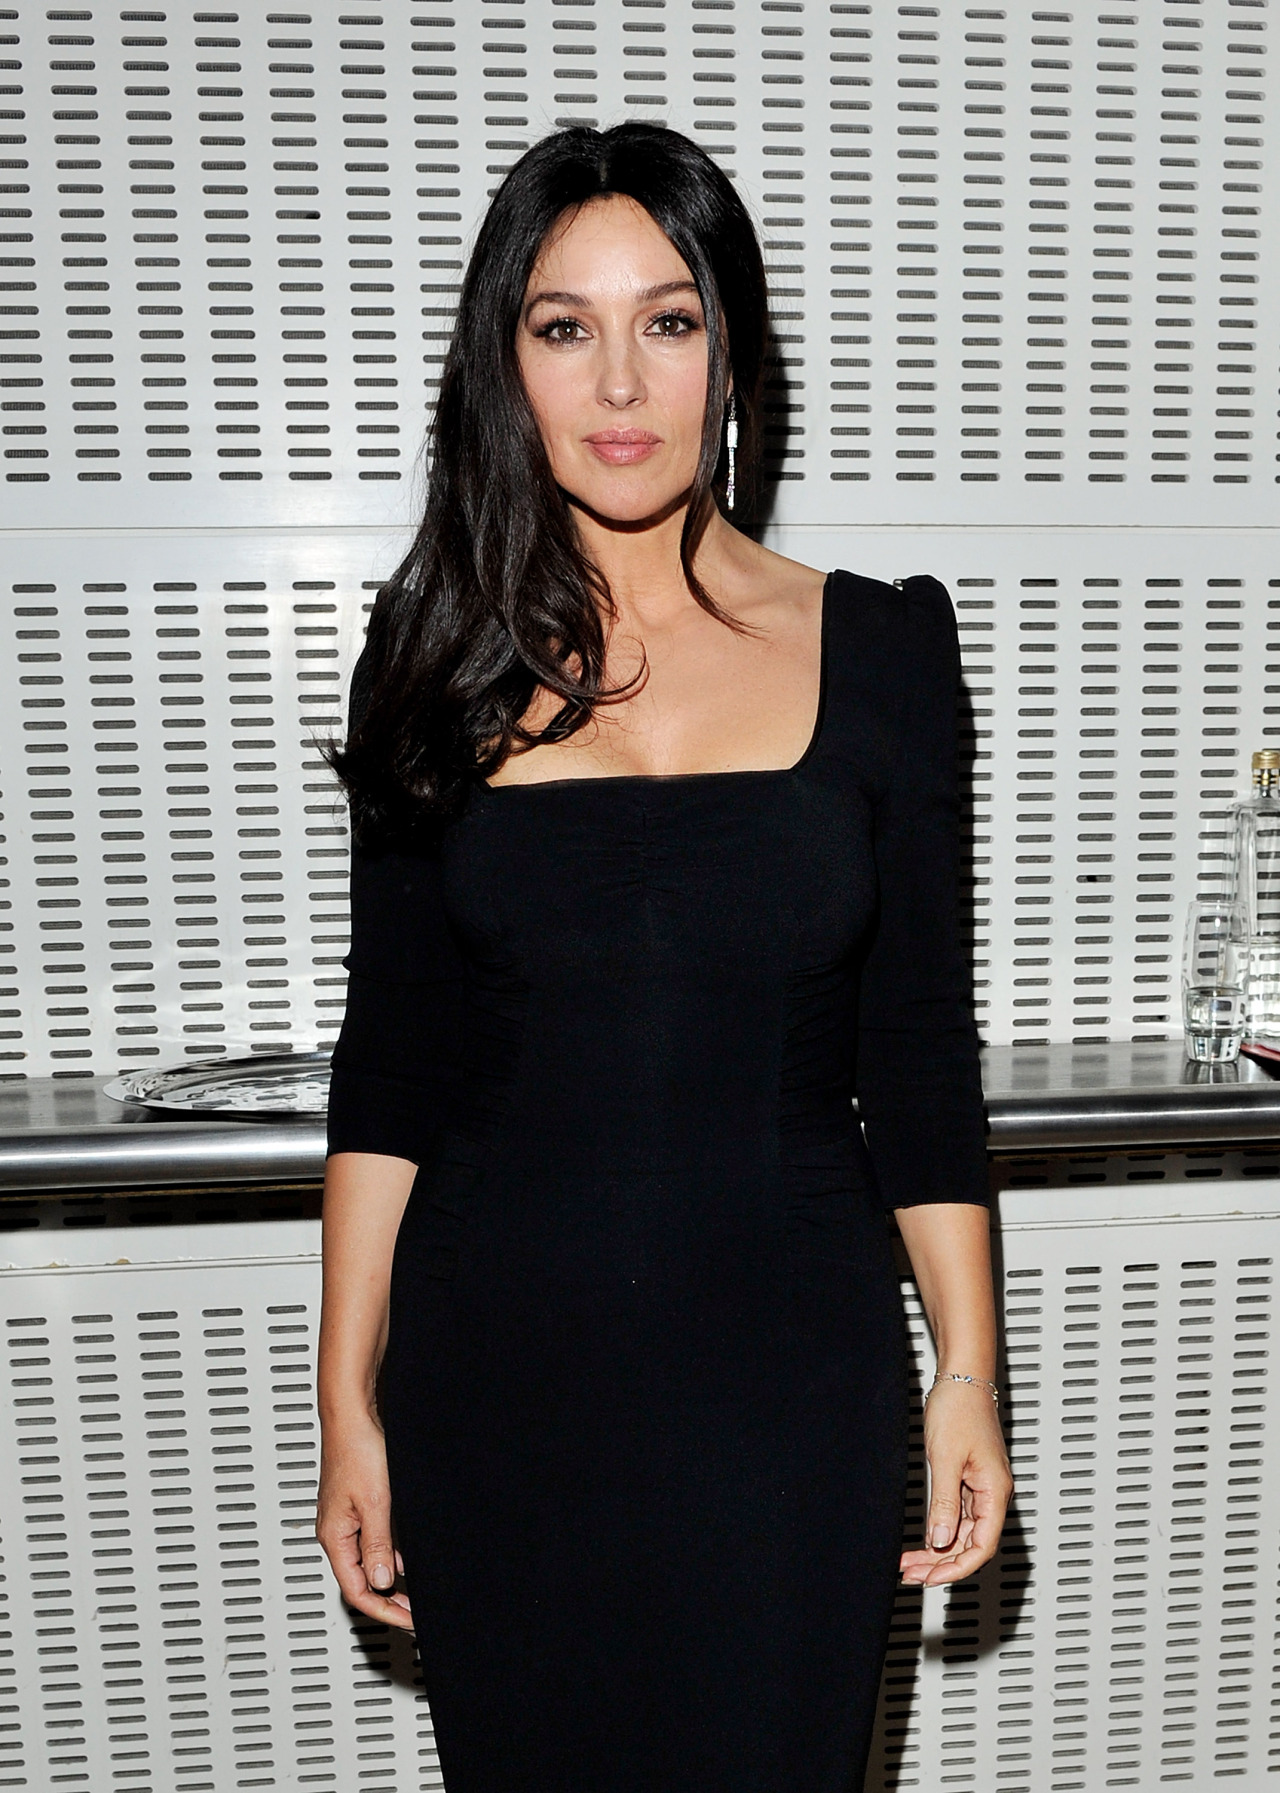 bellucci-bella:  Monica Bellucci attends the 2012 GQ Men of the Year Awards in London, September 4th